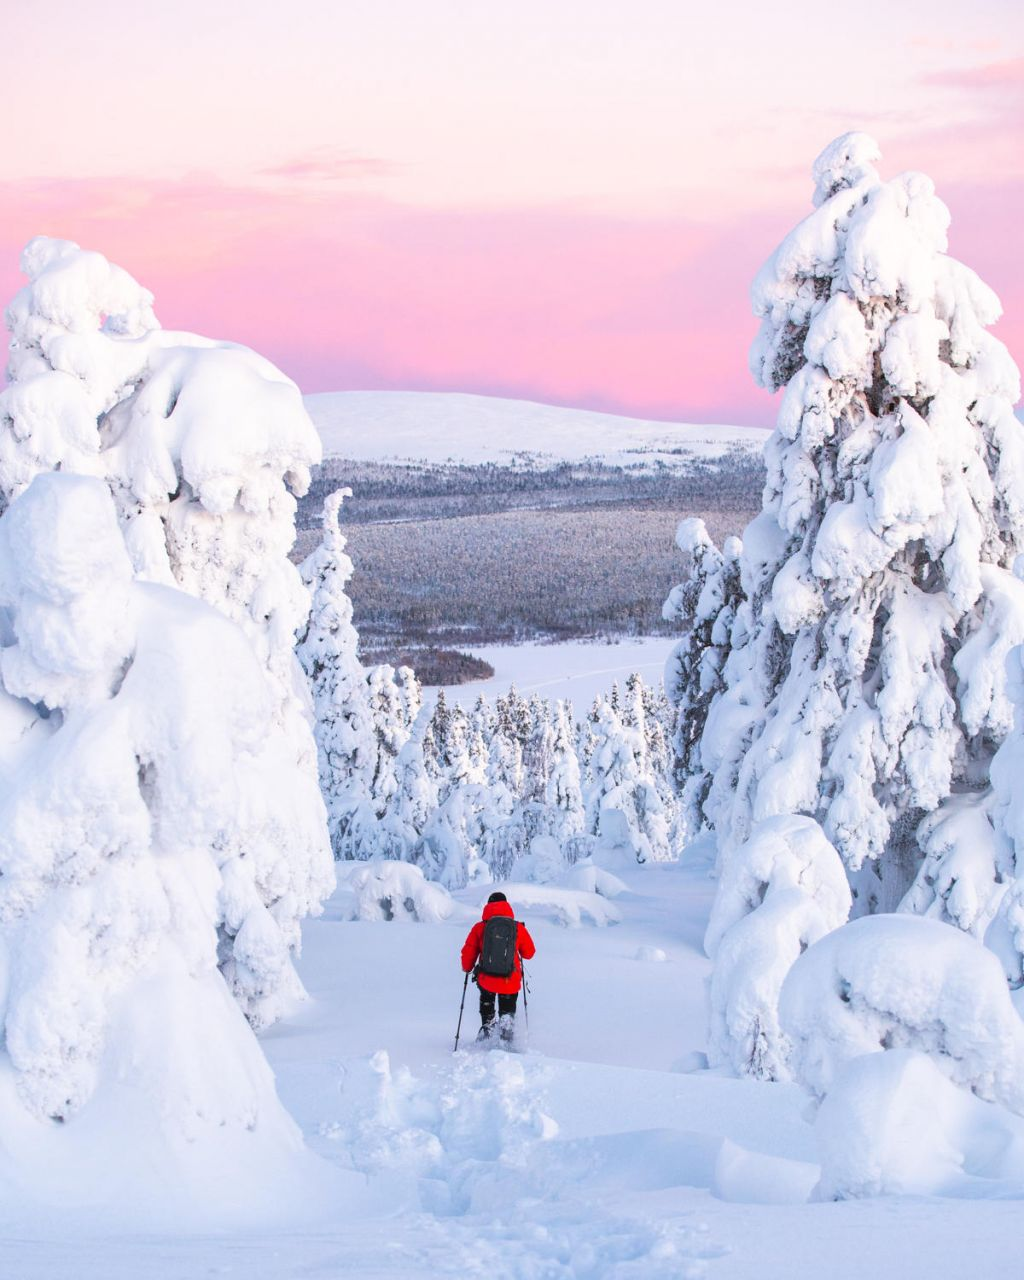 Traversing the snow during Polar Night in Ylläs, Finnish Lapland